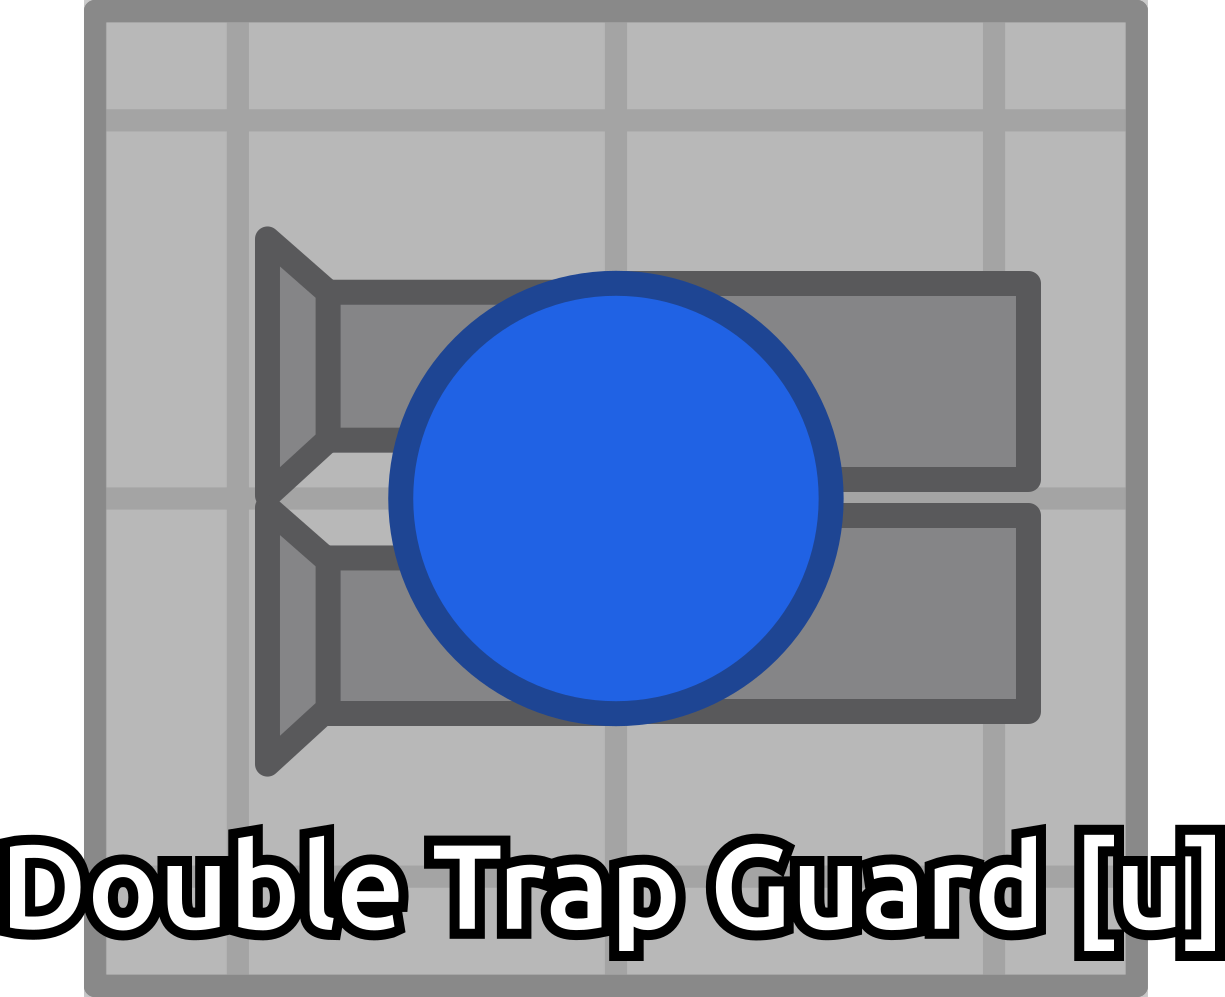 Double Trap Guard